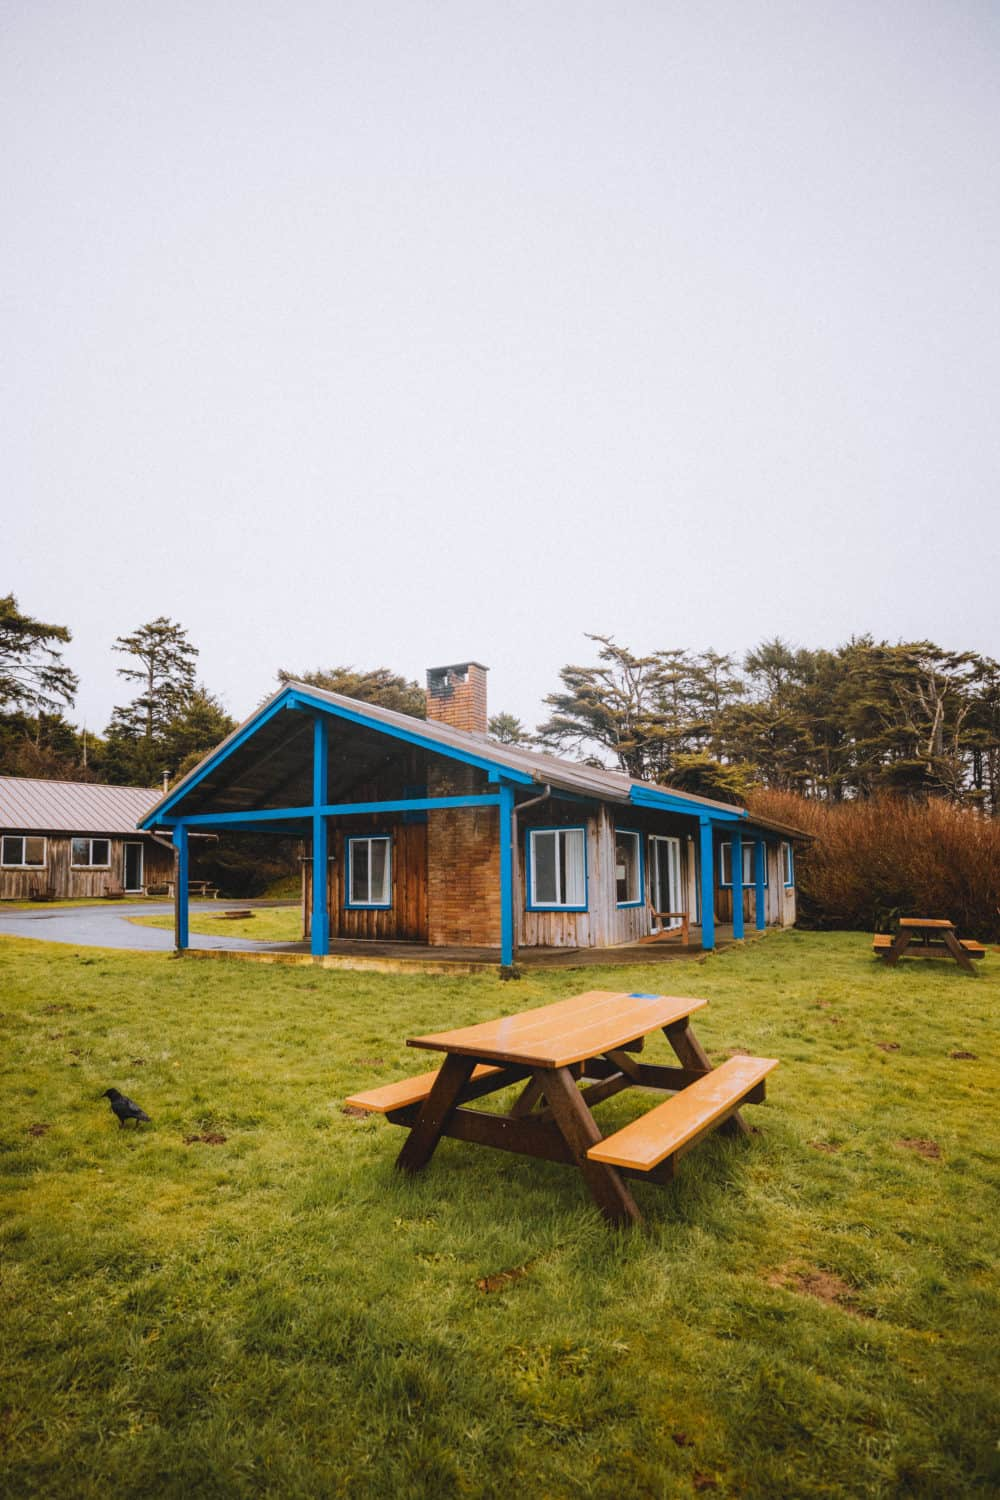 Kalaloch Lodge Beachside Cabins - Washington Coast, Olympic National Park Lodging - TheMandagies.com